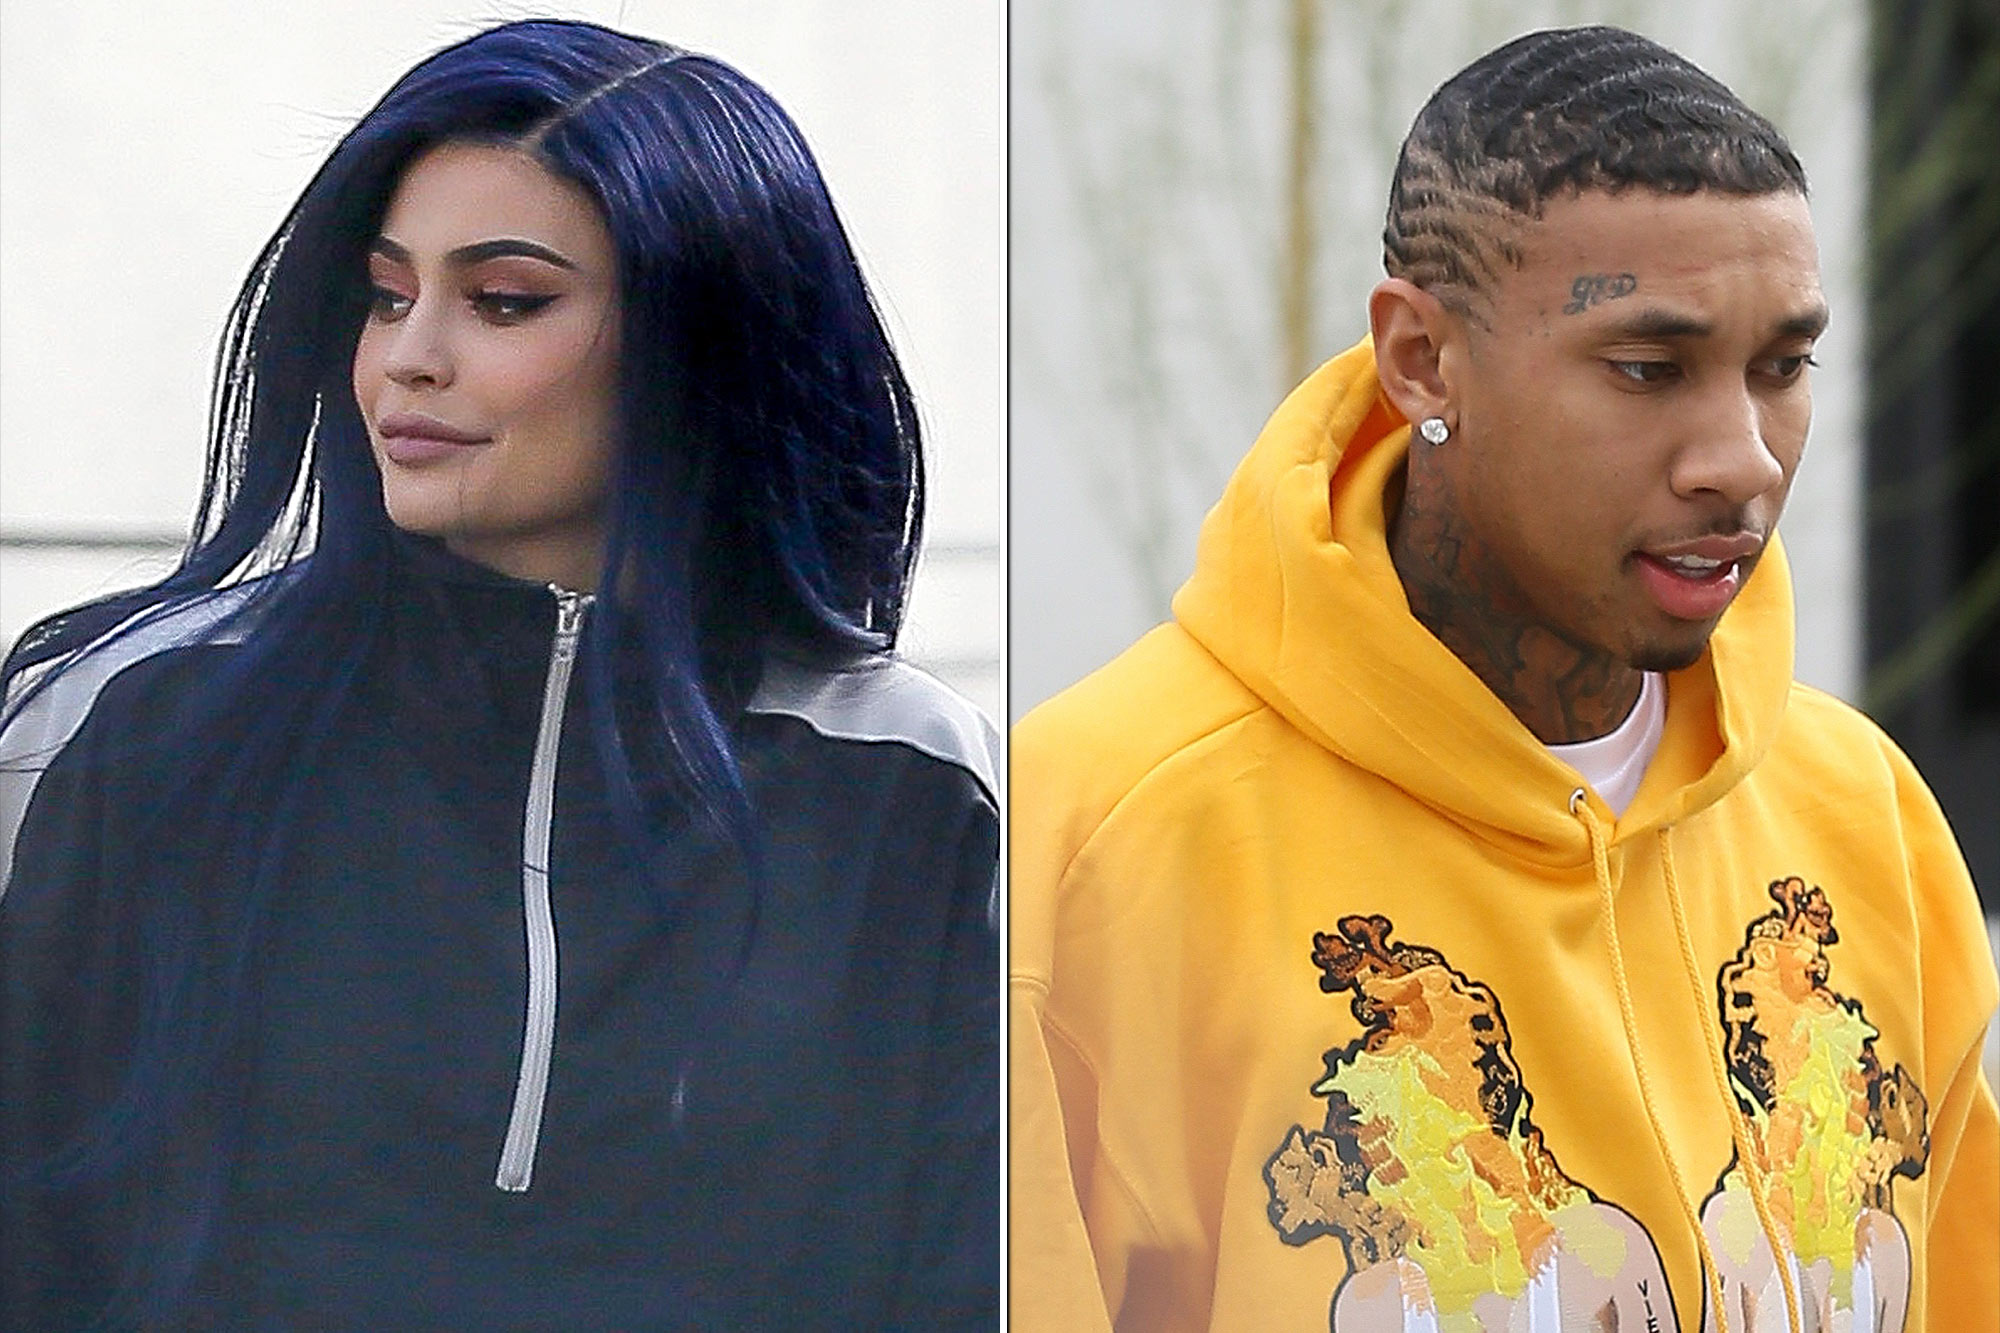 *EXCLUSIVE* Hollywood, CA - Kylie Jenner channelled her new blue hair color this afternoon while out with friends during a shopping trip. AKM-GSI February 8, 2017 To License These Photos, Please Contact: Maria Buda (917) 242-1505 mbuda@akmgsi.com sales@akmgsi.com or Mark Satter (317) 691-9592 msatter@akmgsi.com sales@akmgsi.com www.akmgsi.com *EXCLUSIVE* Hollywood, CA - Tyga visits Kylie with a new car and haircut at the studio in Hollywood. AKM-GSI February 8, 2017 To License These Photos, Please Contact : Maria Buda (917) 242-1505 mbuda@akmgsi.com sales@akmgsi.com or Mark Satter (317) 691-9592 msatter@akmgsi.com sales@akmgsi.com www.akmgsi.com